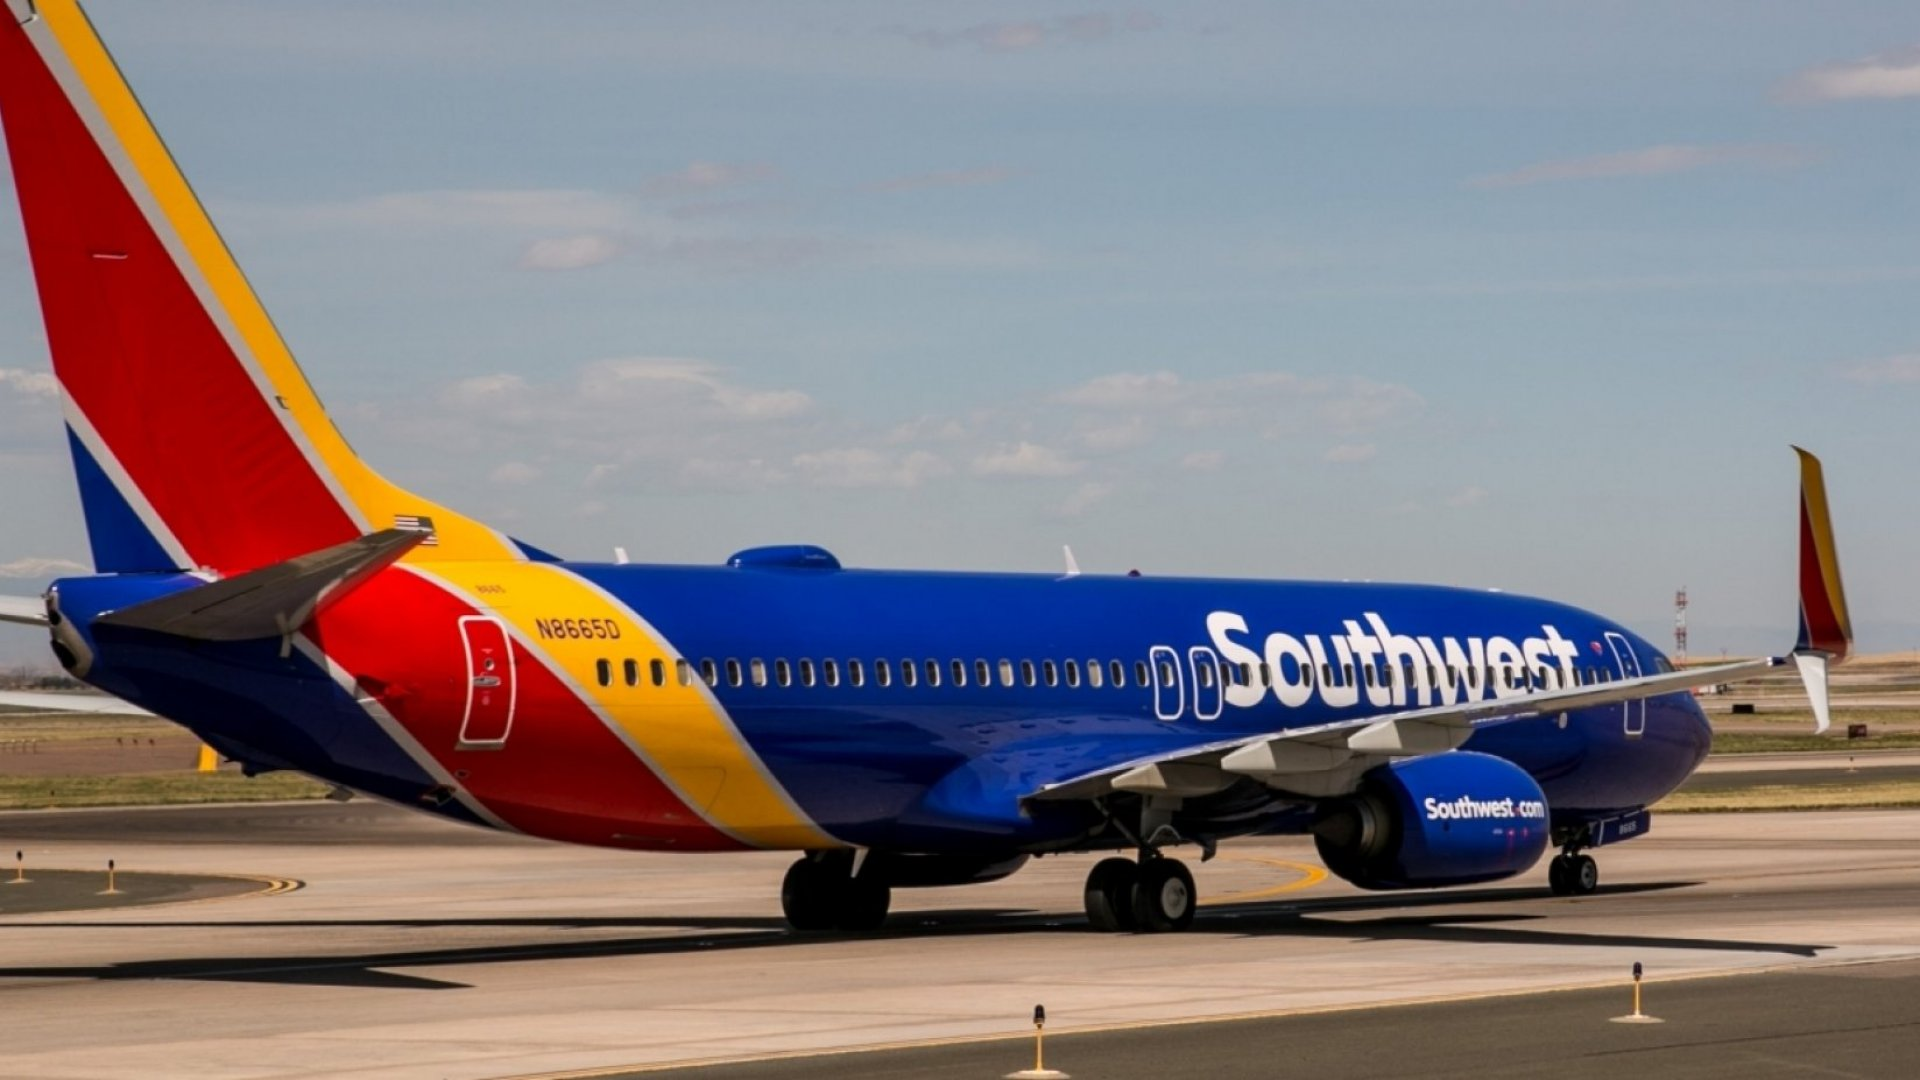 Southwest Airlines Made $200 Million Selling This 1 Simple Thing (So Why Are They Messing With It?)